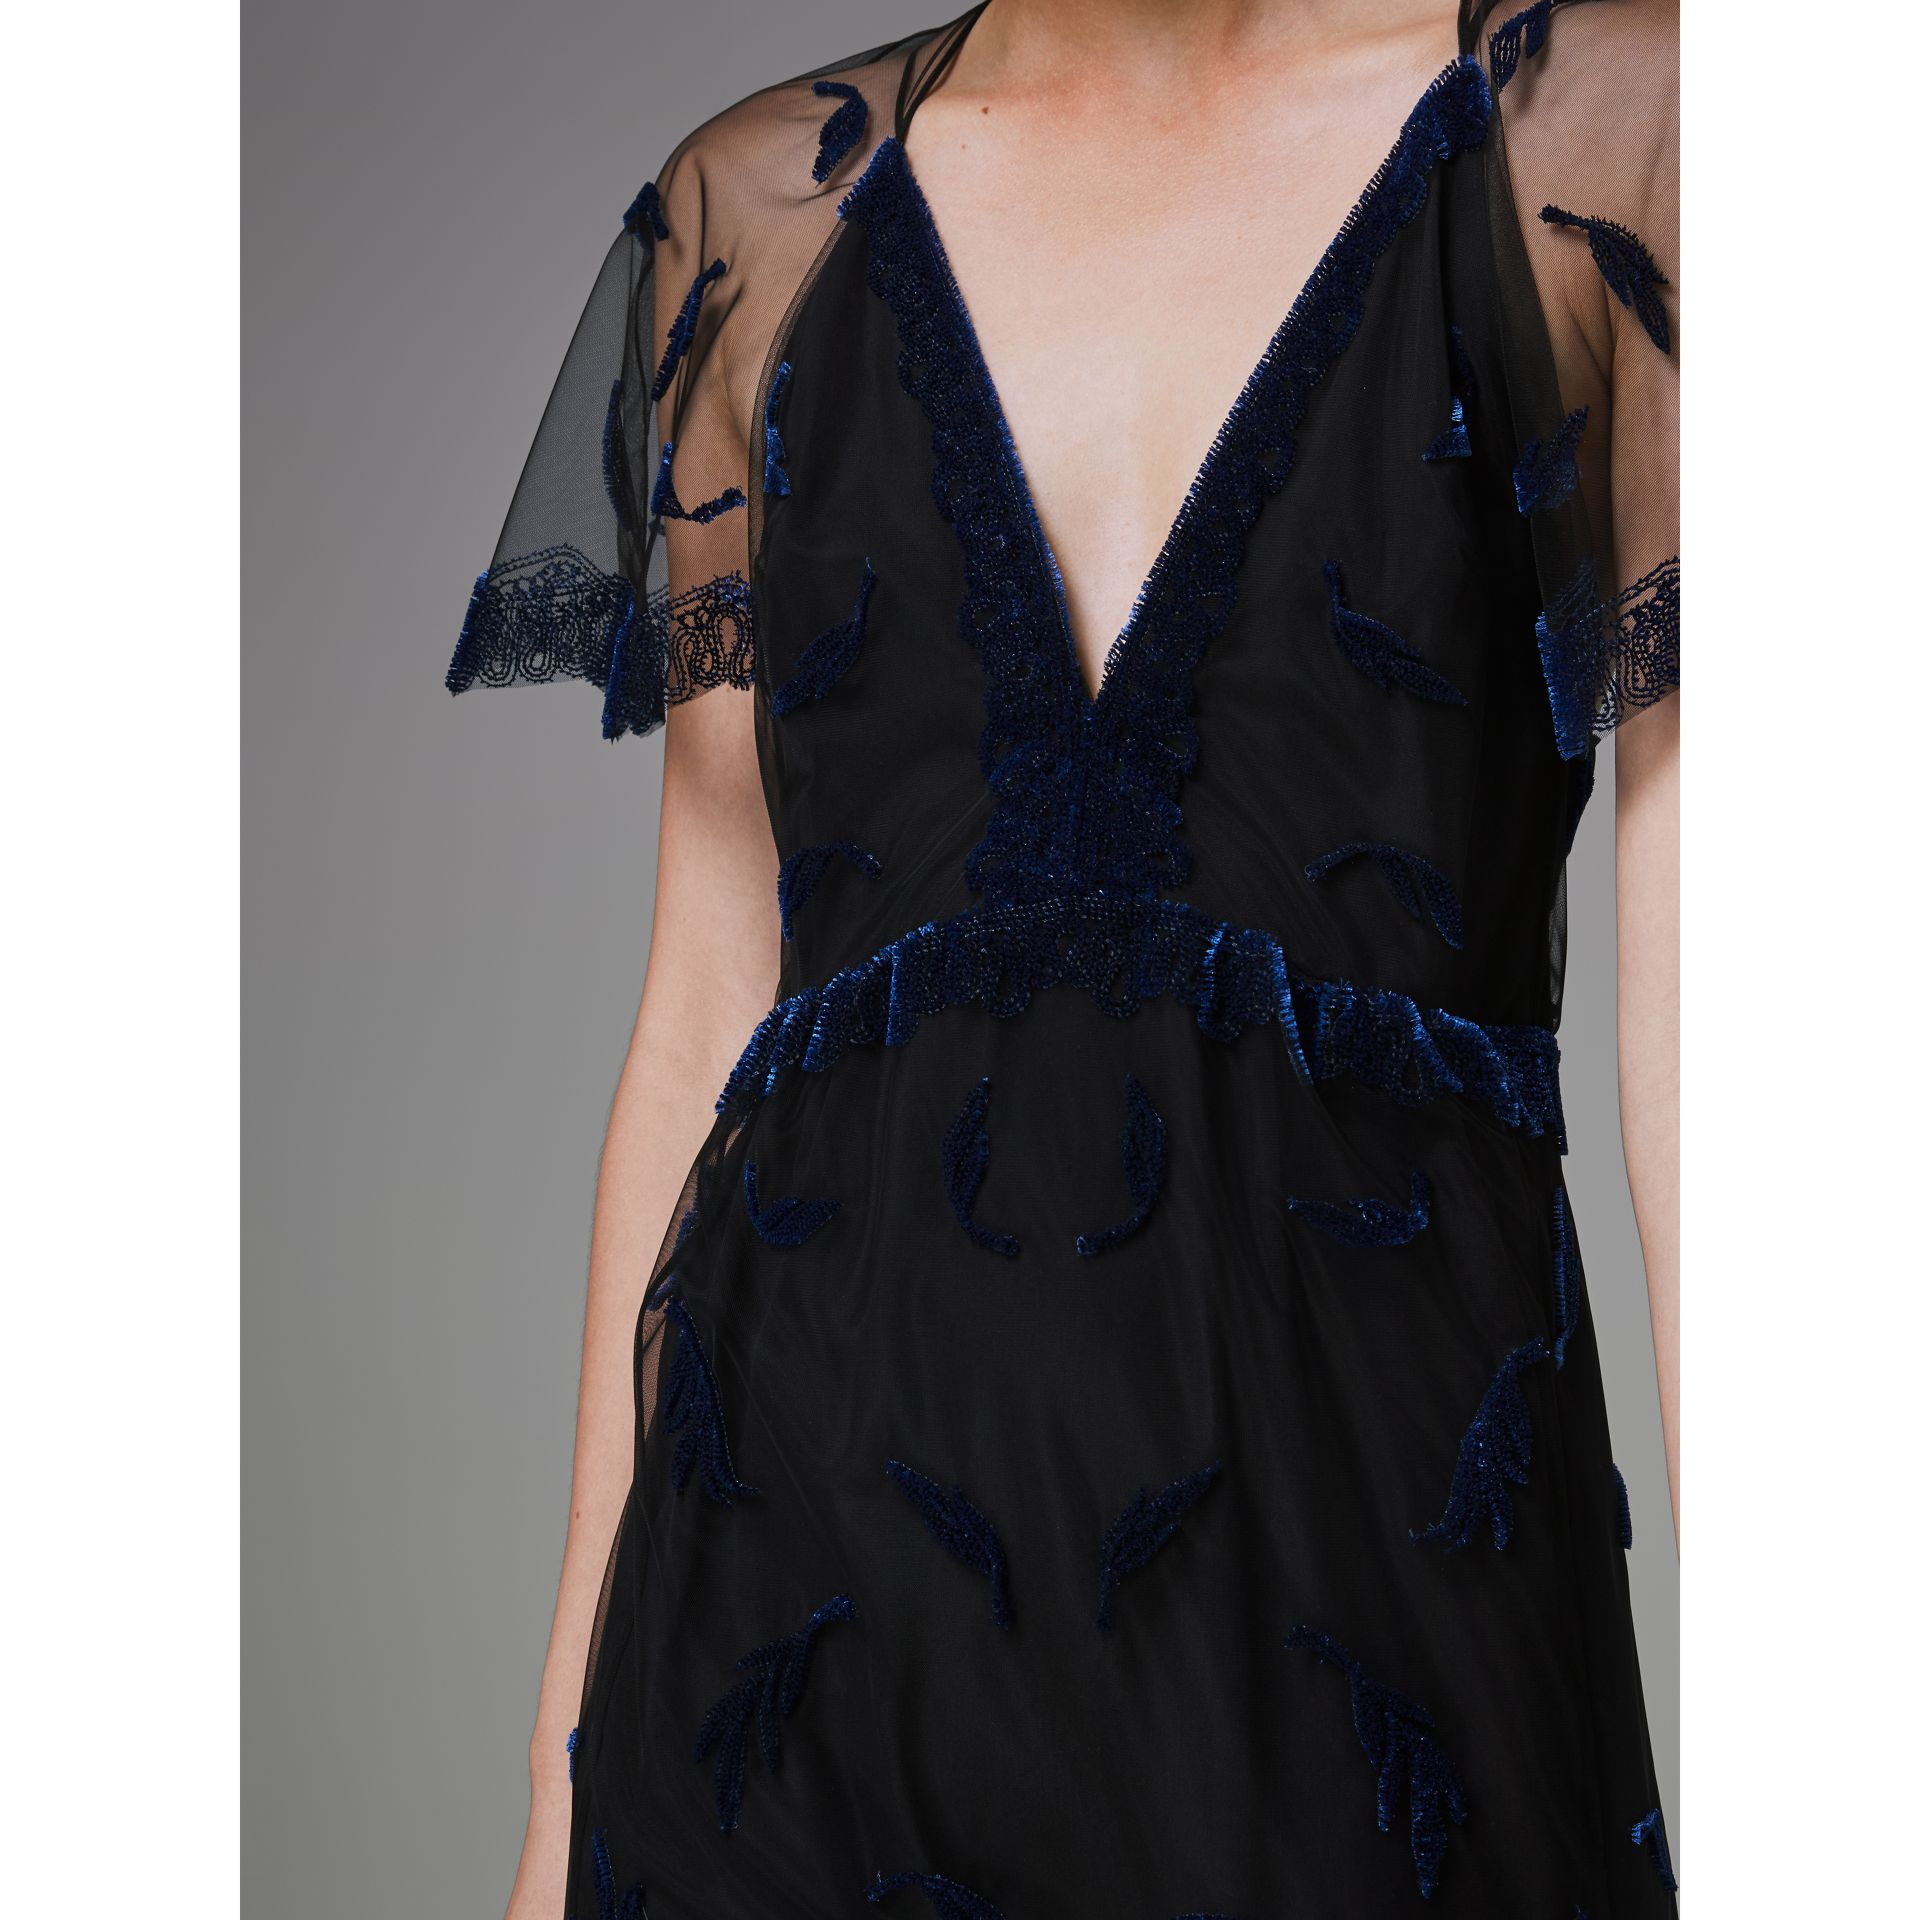 Velvet Leaf Cap-sleeve Gown in Black/blue - Women | Burberry Singapore - gallery image 1